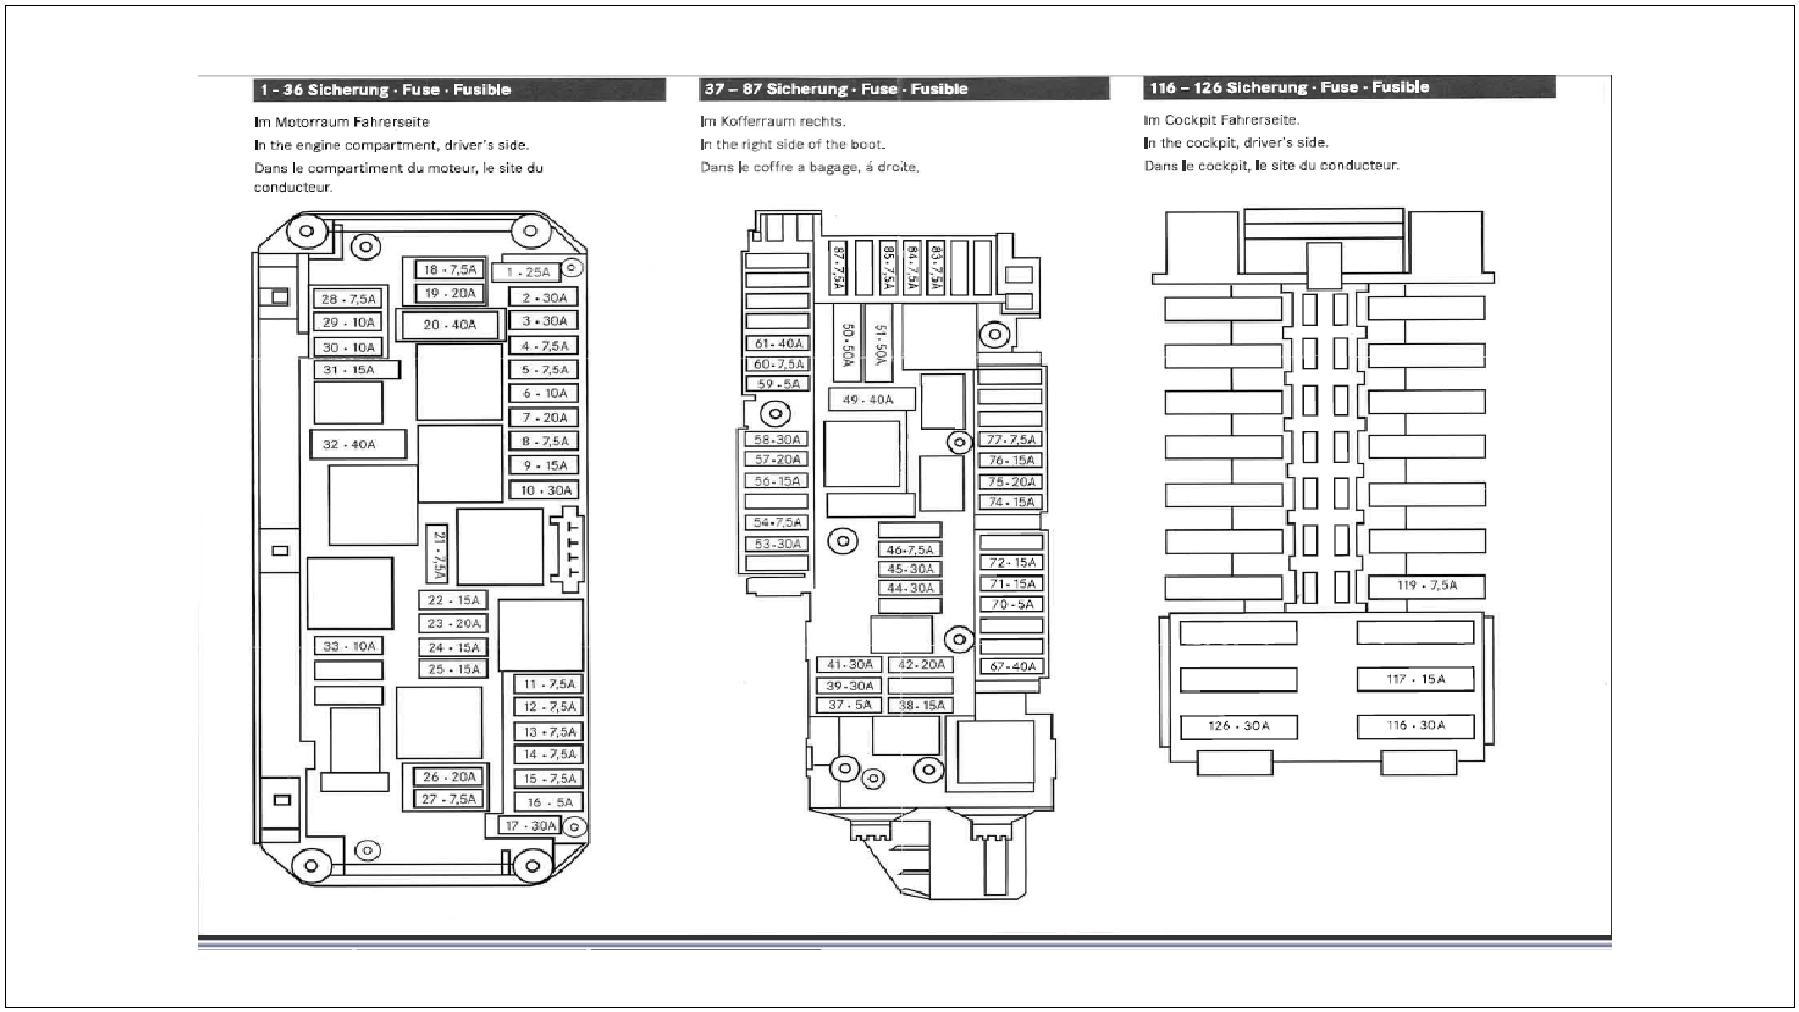 S430 Wiring Diagram Archive Of Automotive 2004 Mercedes Fuse Box C240 4matic Schematics Rh Readinghypnotherapist Co Uk 2000 2002